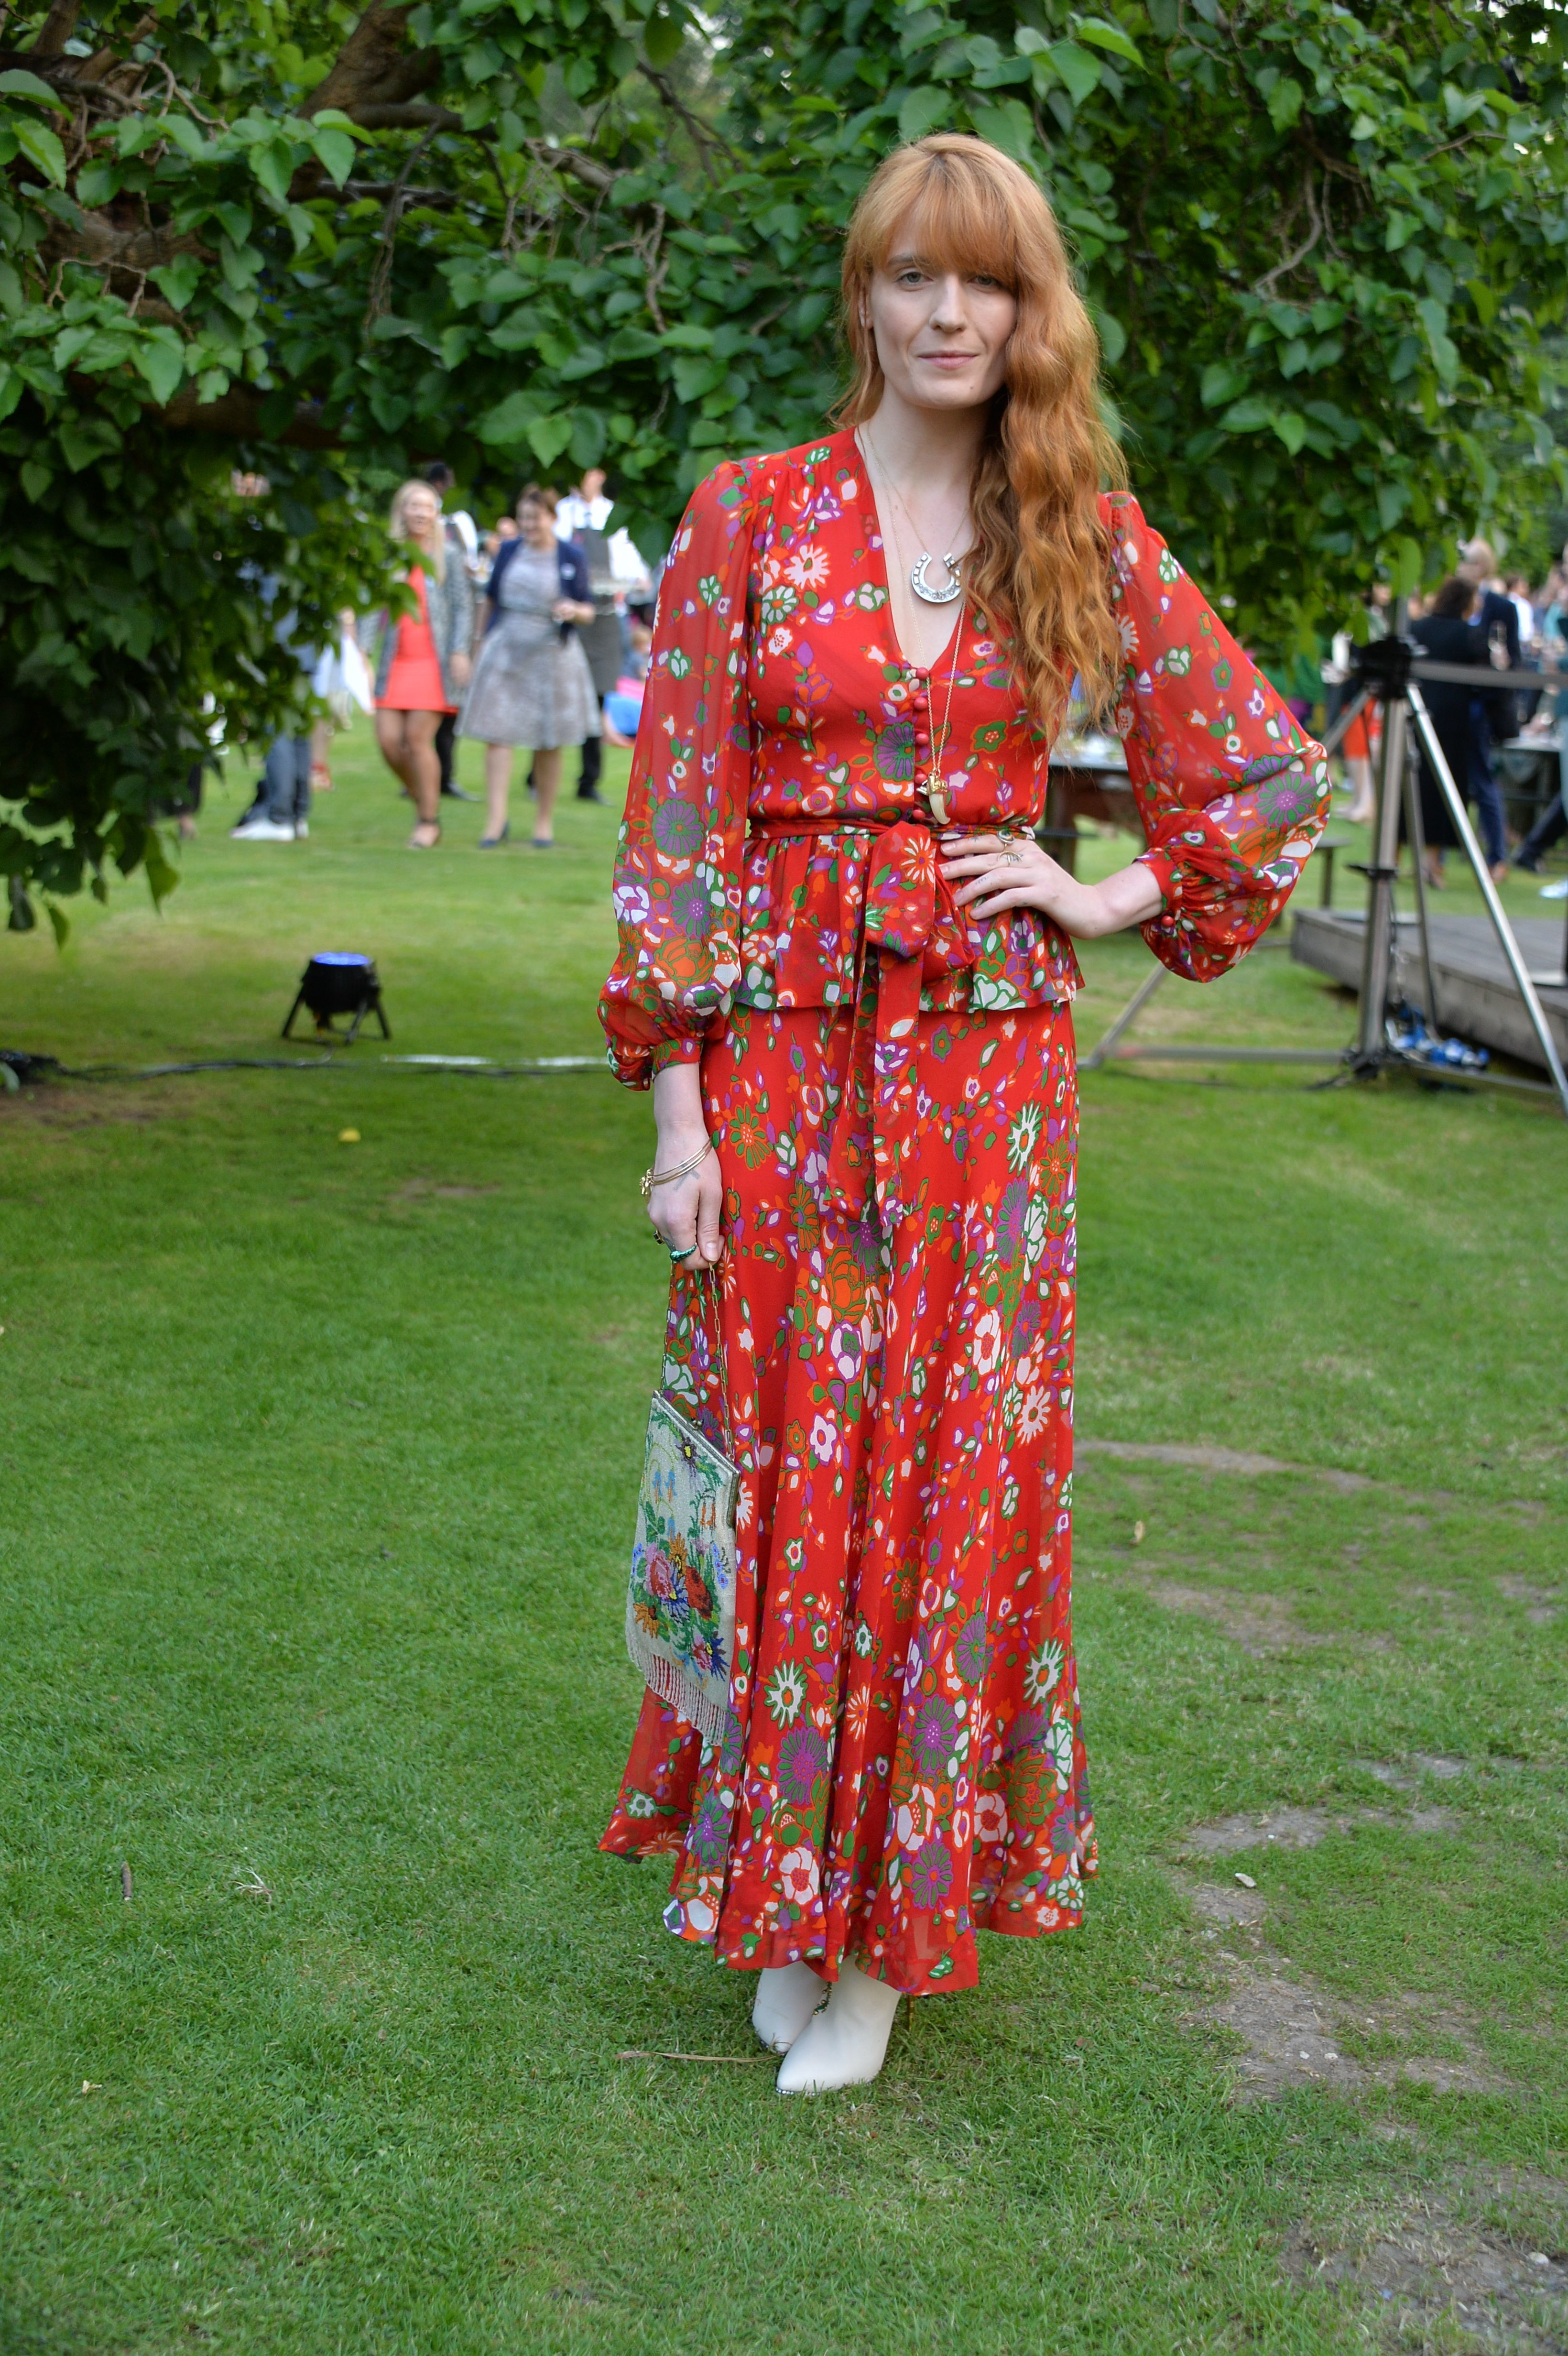 Florence Welch attends the Dulwich Picture Gallery Summer Party in London on June 13, 2017.